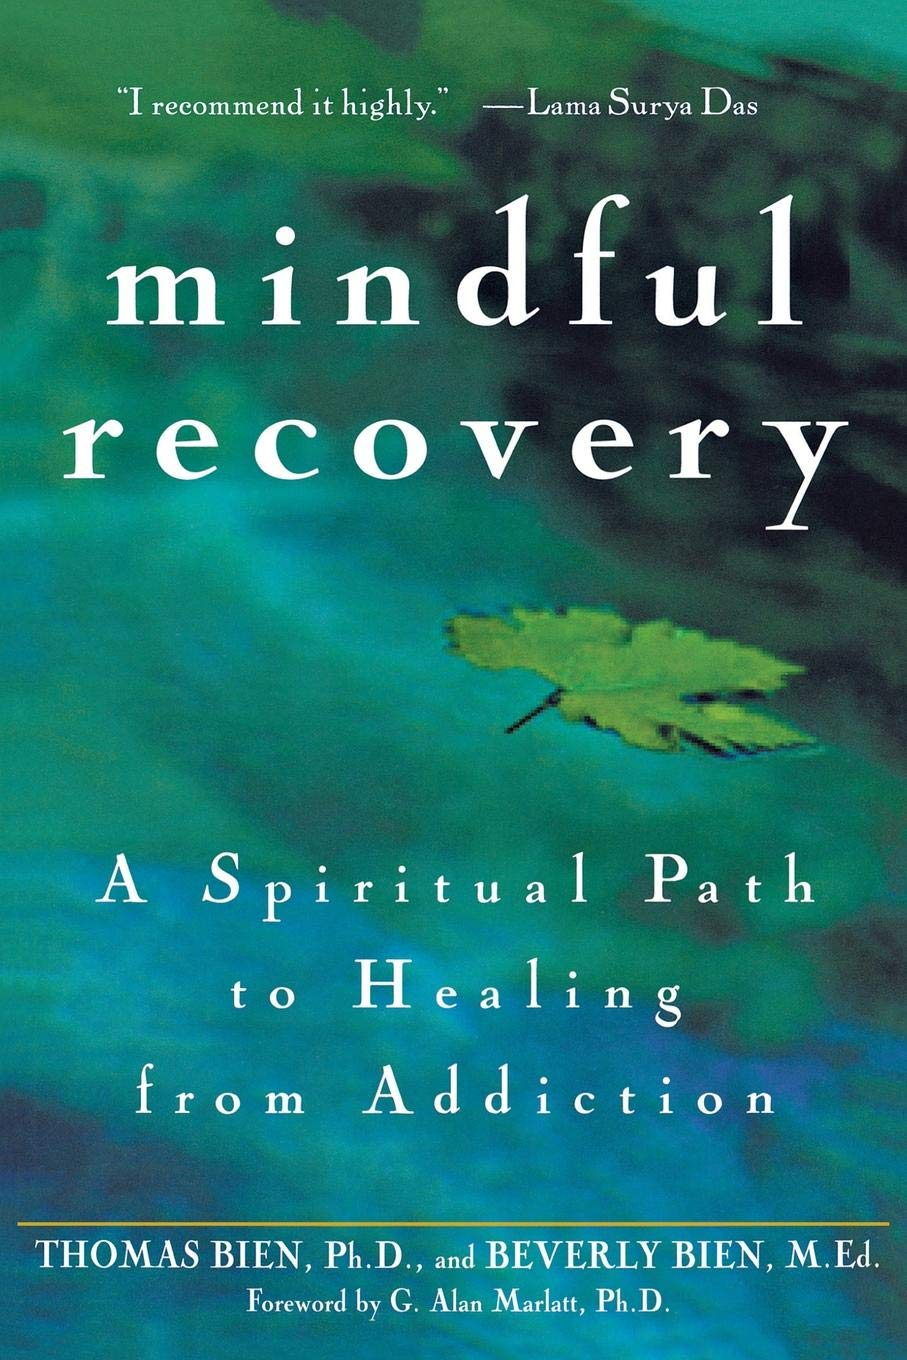 Image OfMindful Recovery: A Spiritual Path To Healing From Addiction